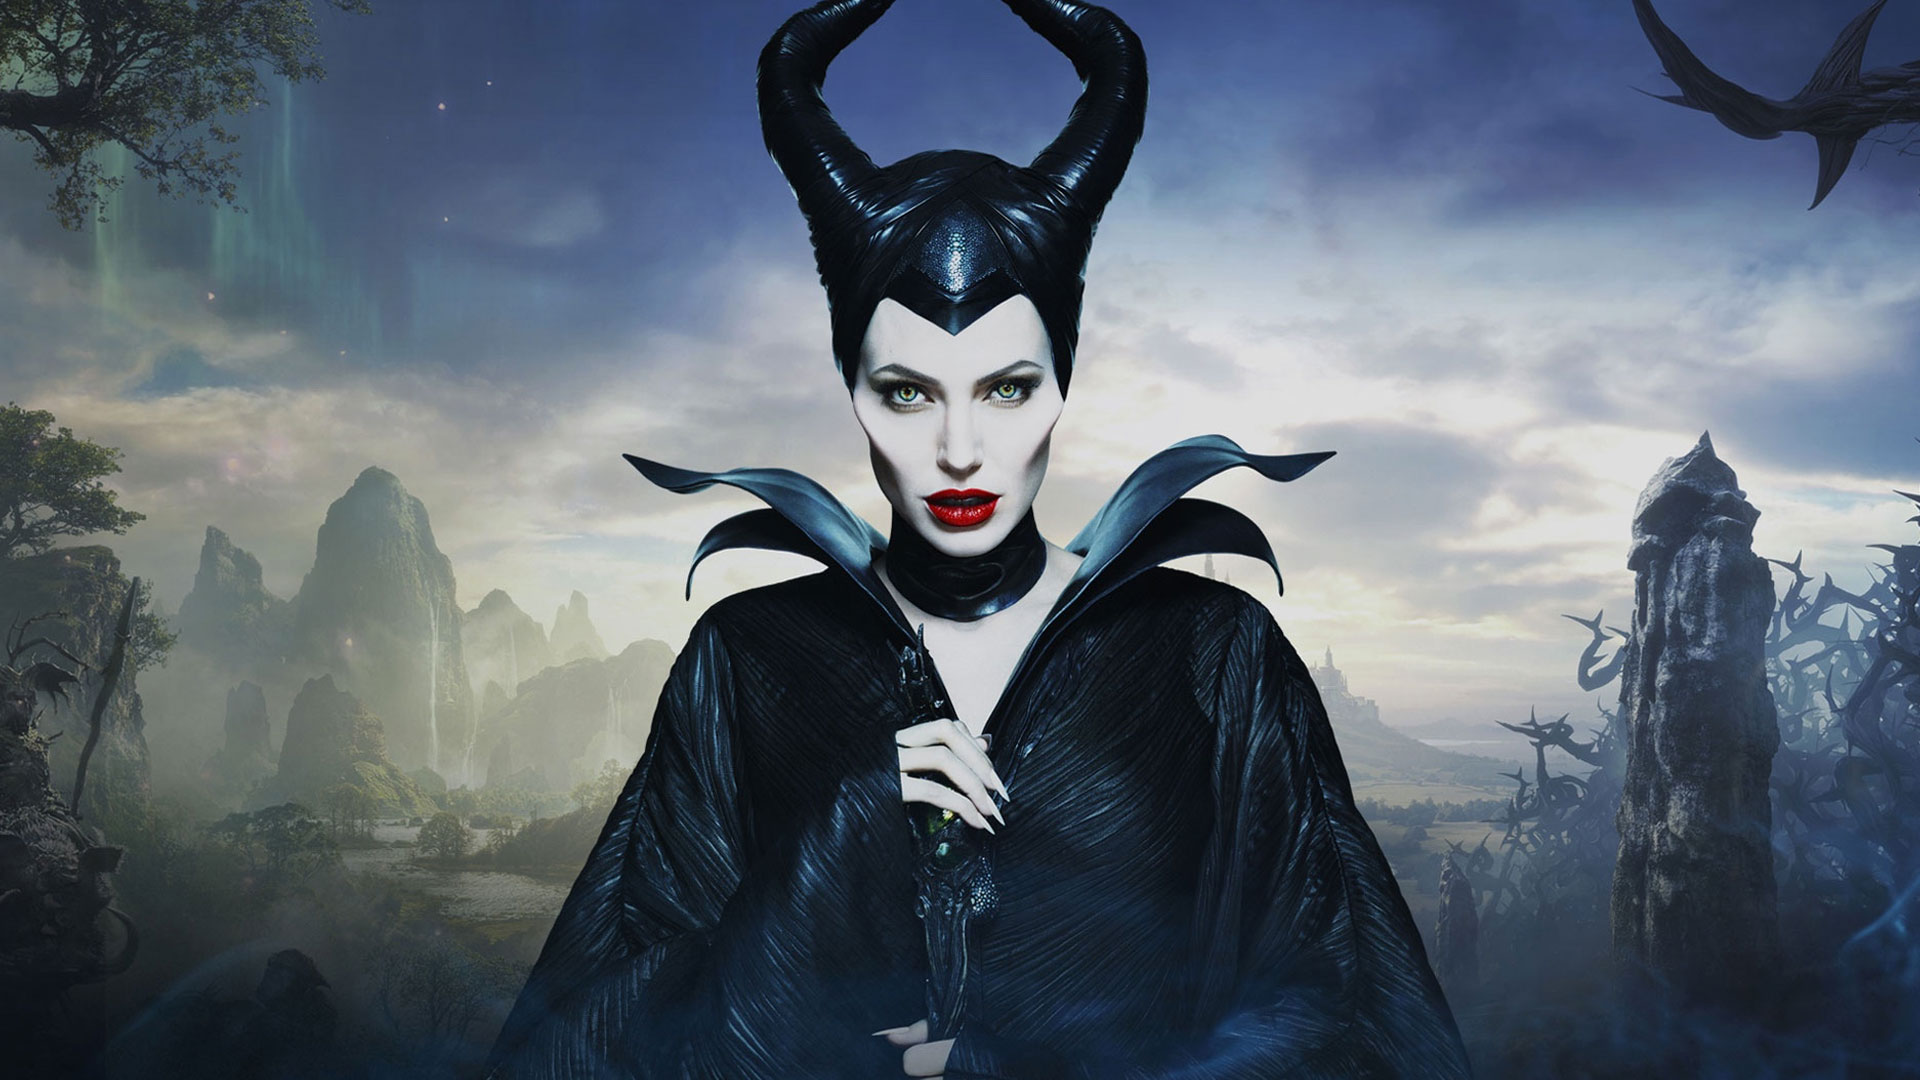 Halloween Disney 2019 Date.The Most Anticipated New Disney Movies Of 2019 And Beyond